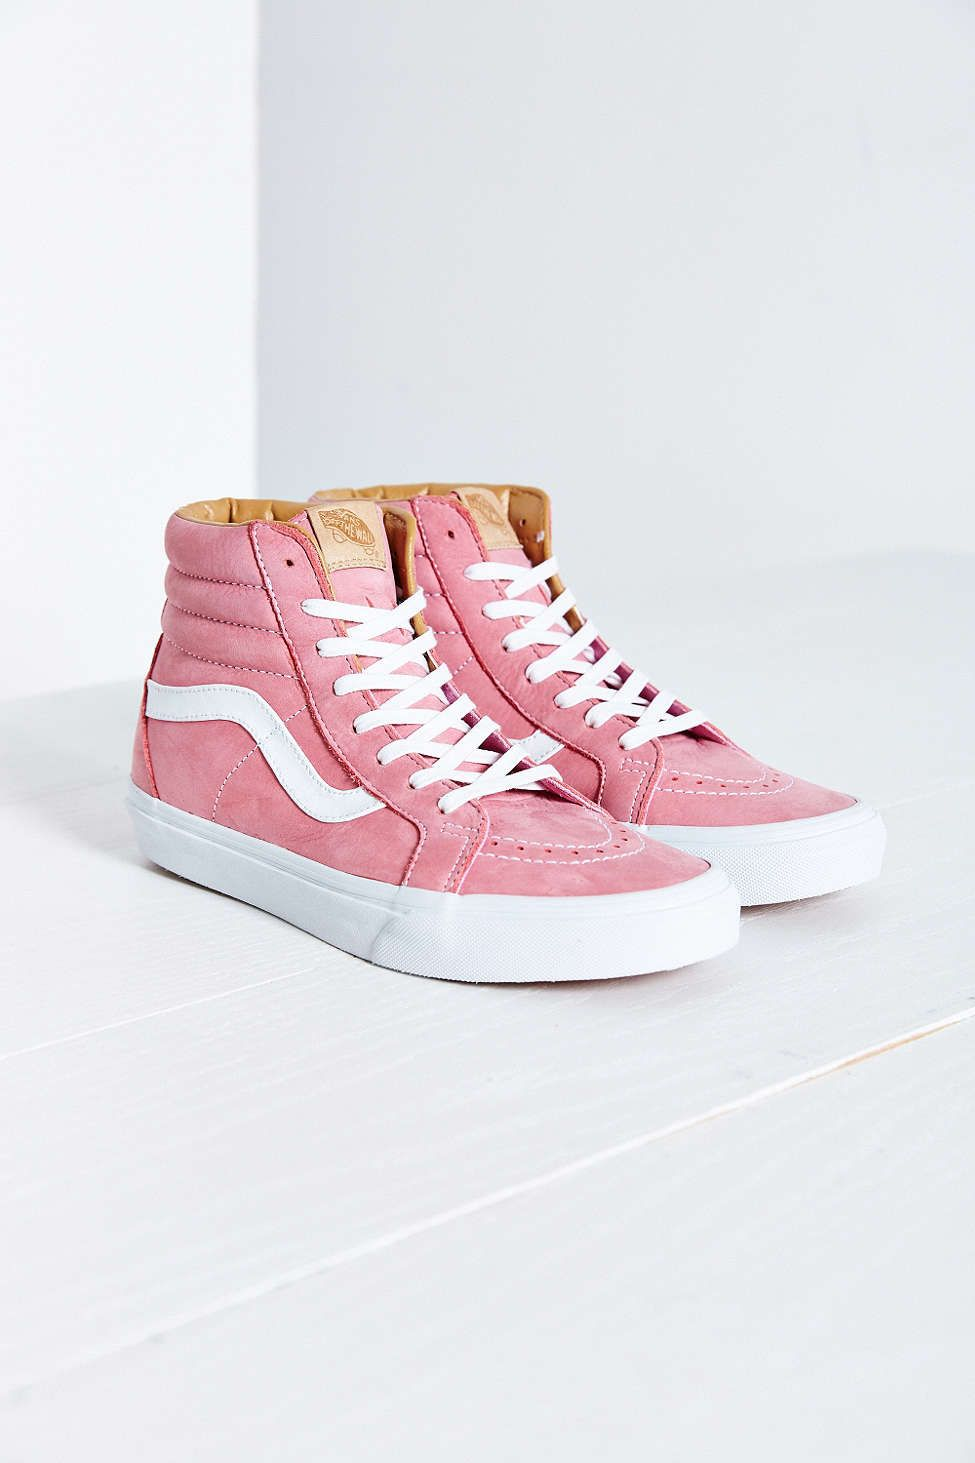 e377e0cd9a Vans California Sk8 Buttersoft Reissue High-Top Sneaker High Top Vans